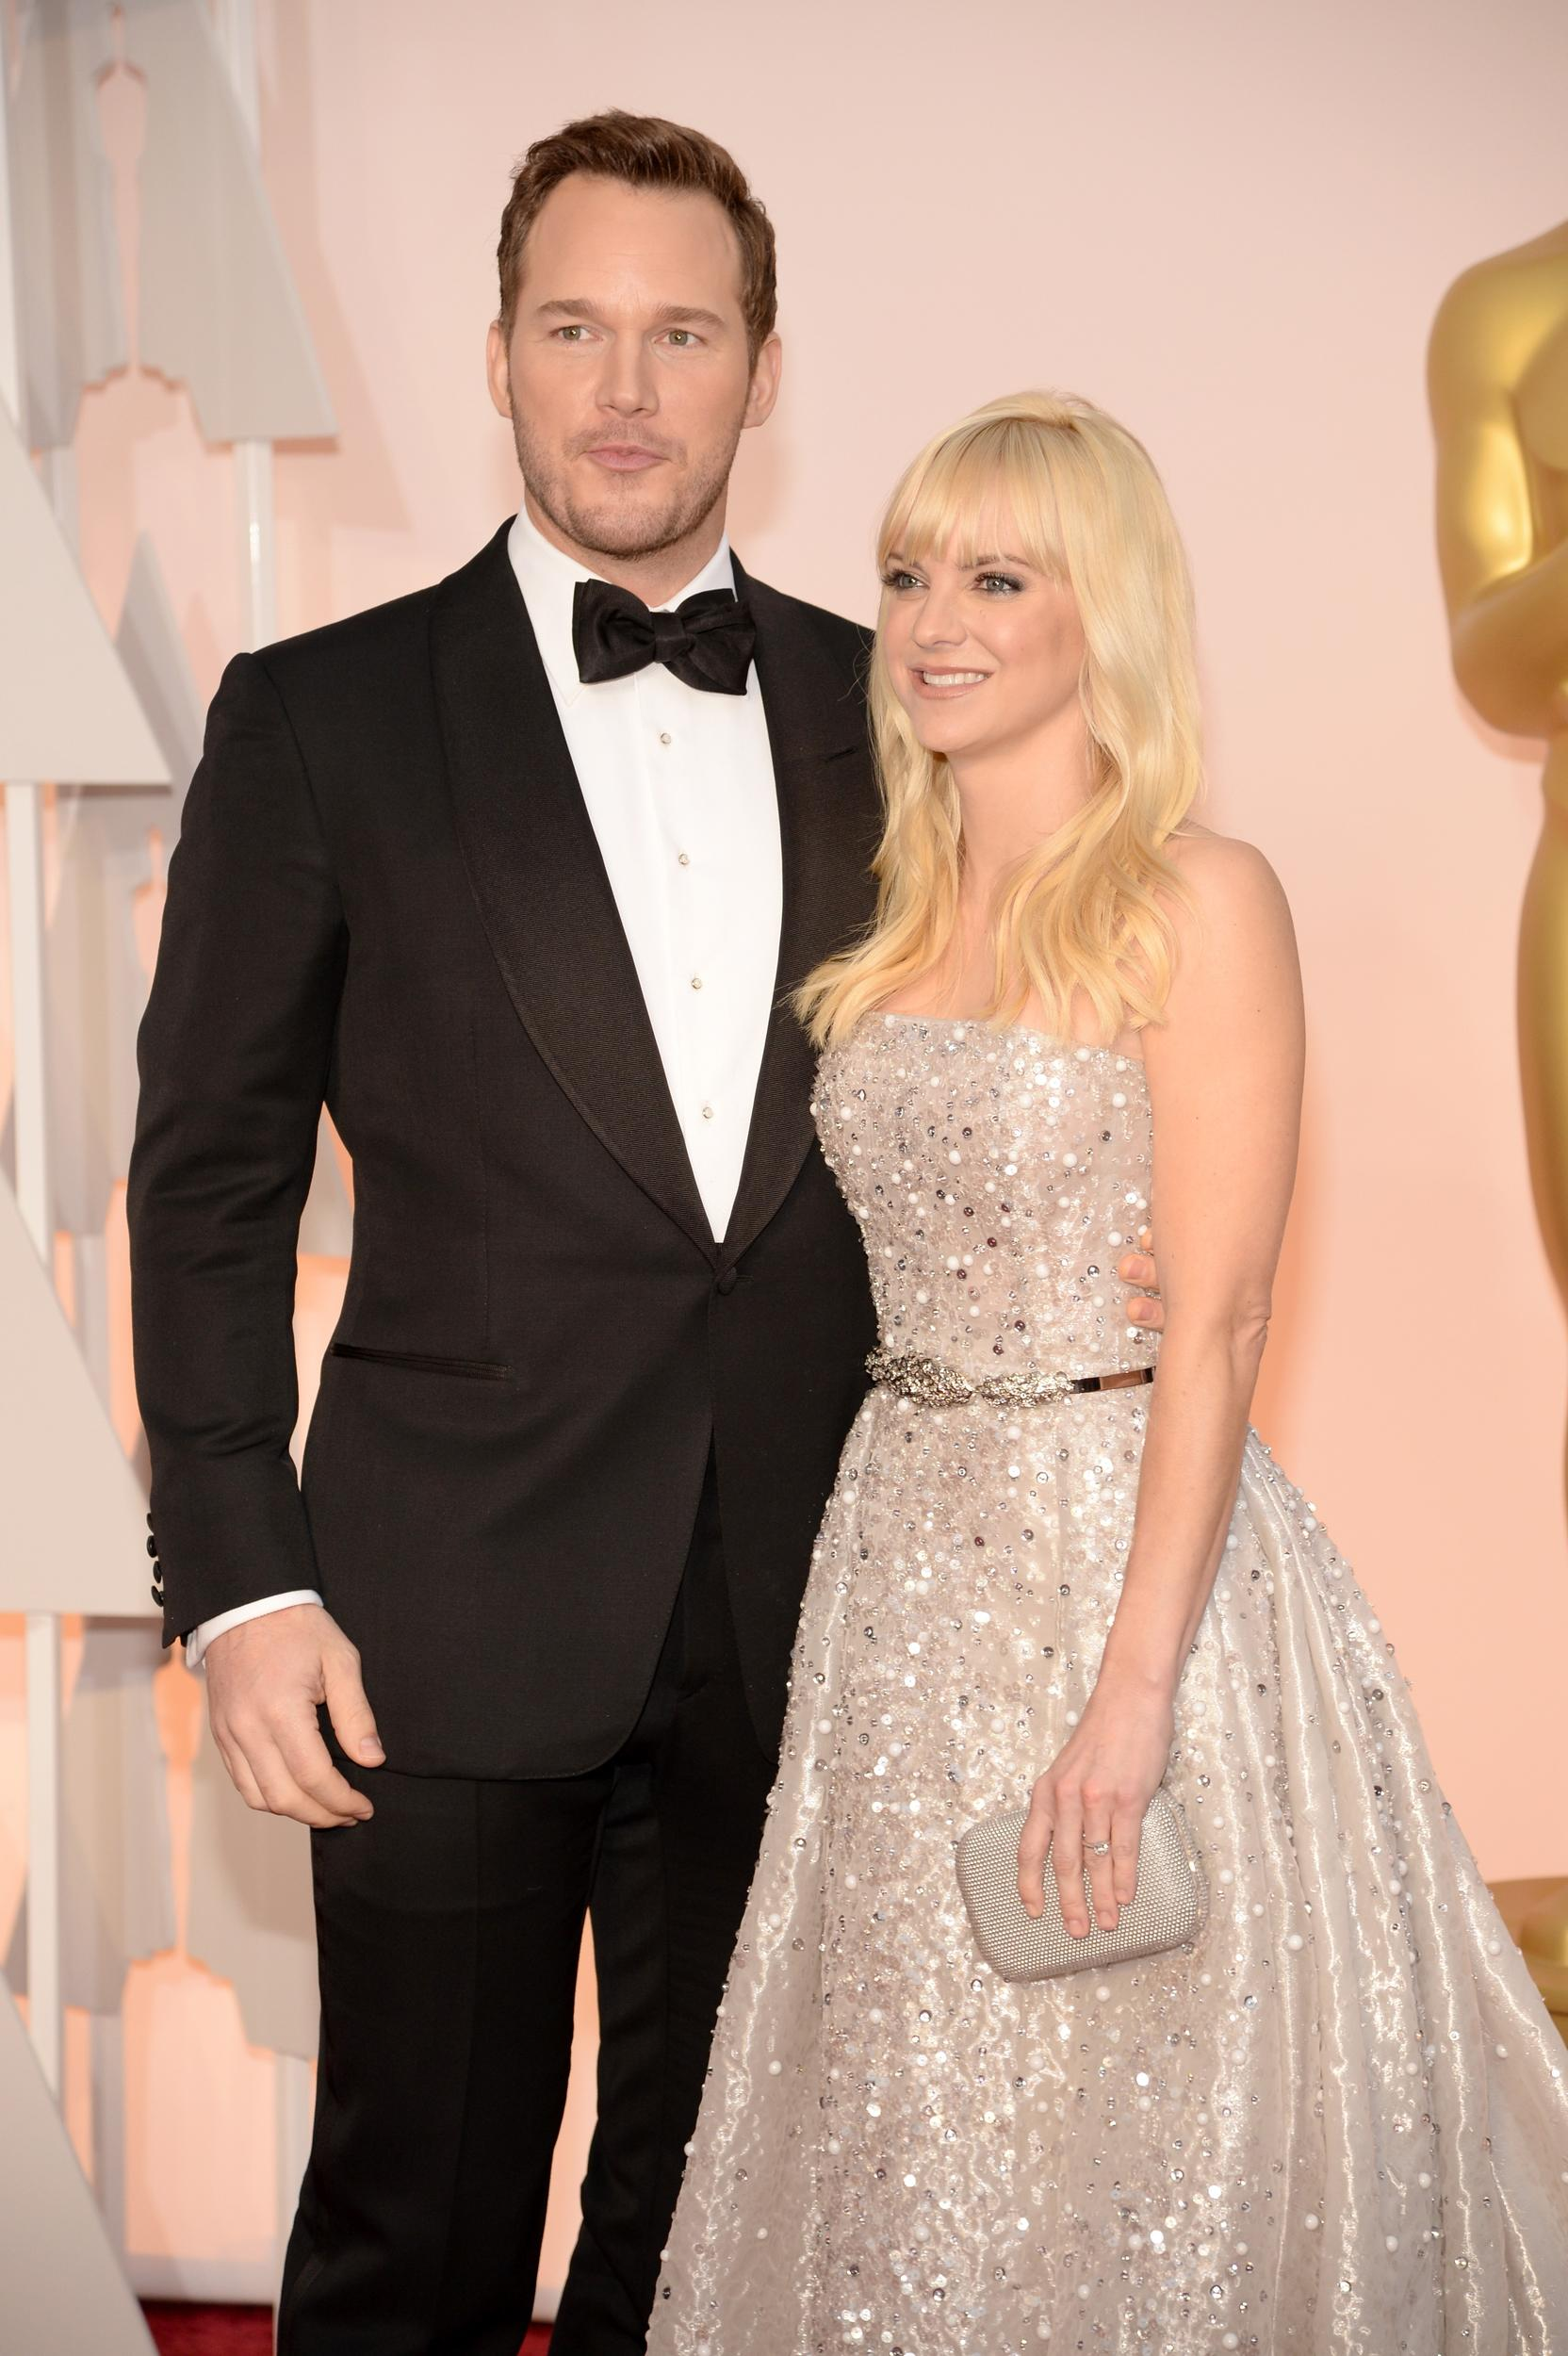 HOLLYWOOD, CA - FEBRUARY 22:  Actors Chris Pratt (L) and Anna Faris attend the 87th Annual Academy Awards at Hollywood & Highland Center on February 22, 2015 in Hollywood, California.  (Photo by Kevin Mazur/WireImage)